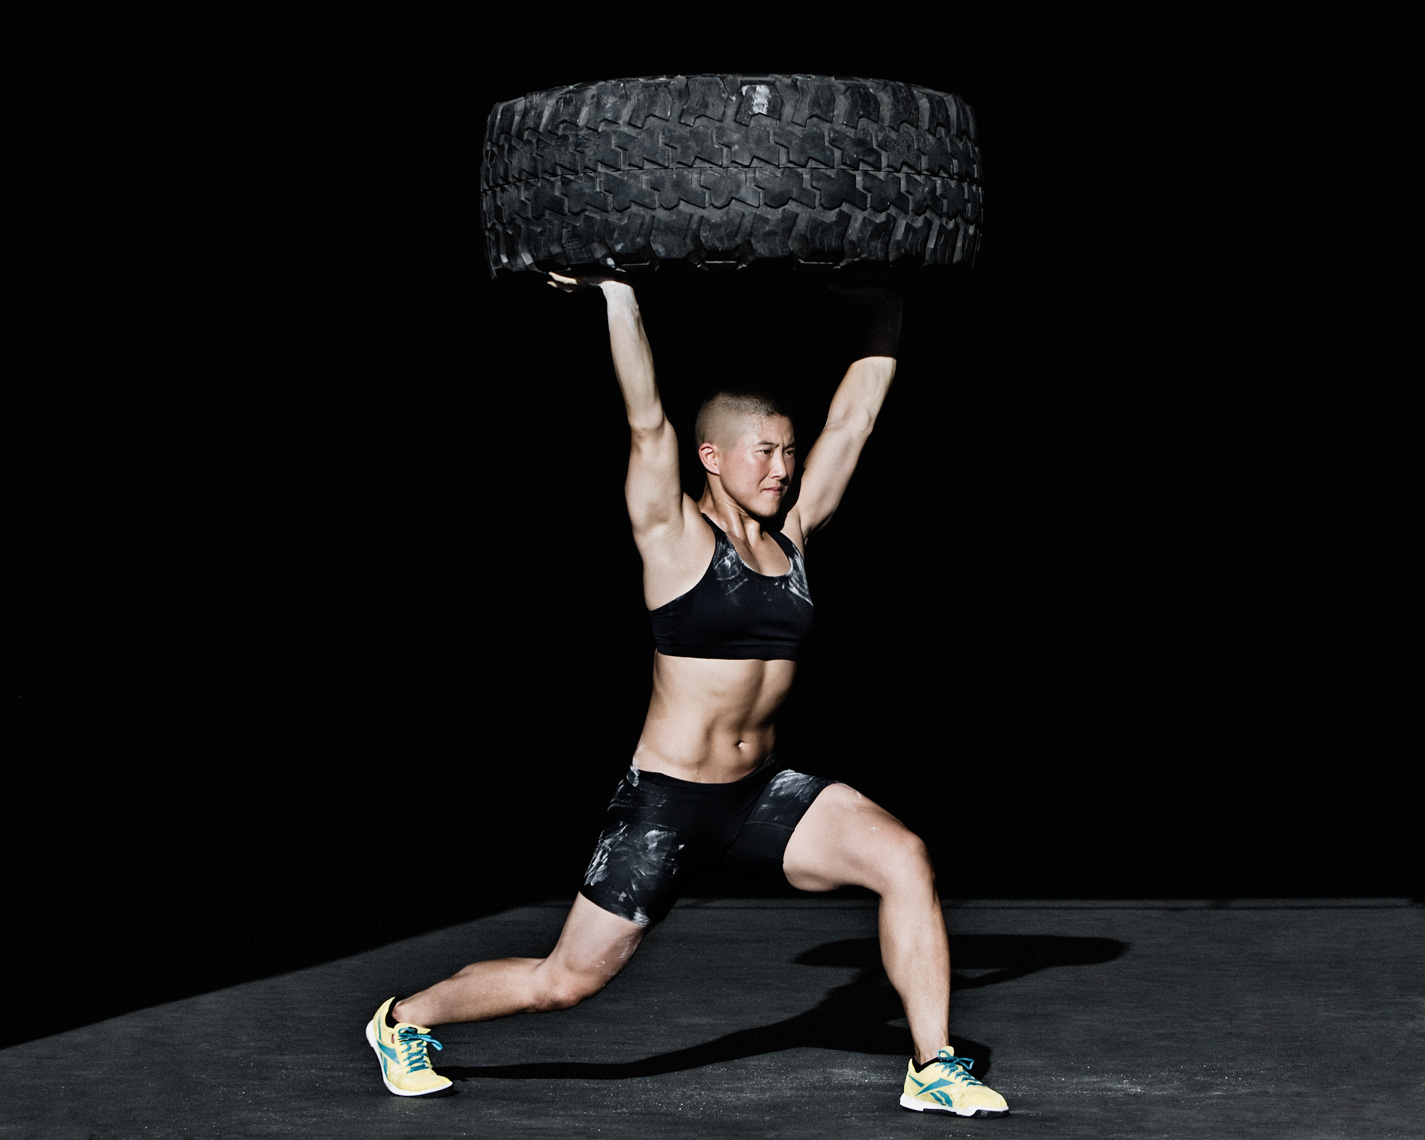 Los Angeles Sports Photography, Michael Brian, athlete, female, Kristan Clever, walking lunge, tire overhead, Former Crossfit Games Champion, Reebok